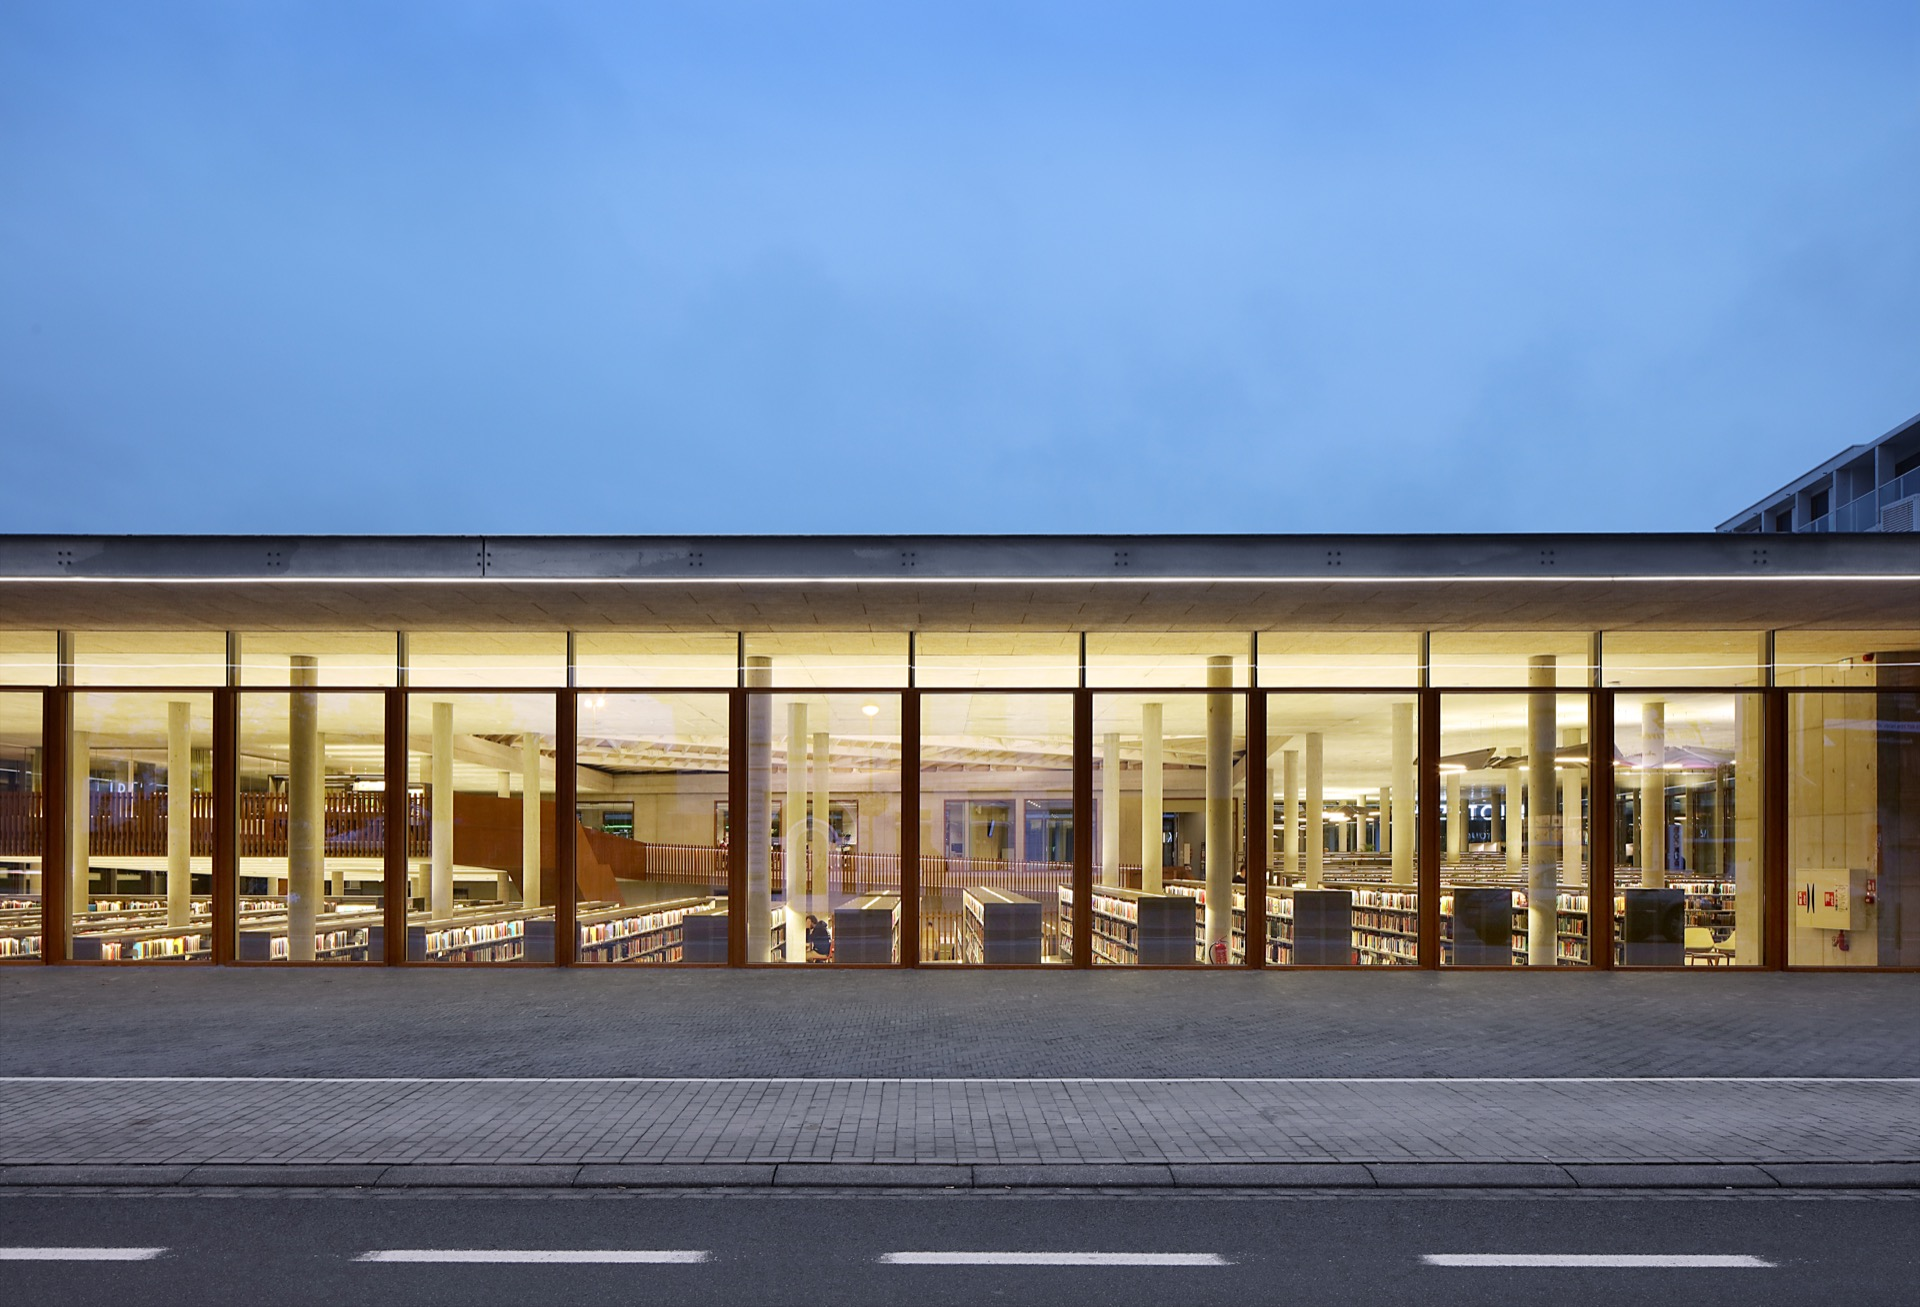 Waregem public library building architecture design exterior view